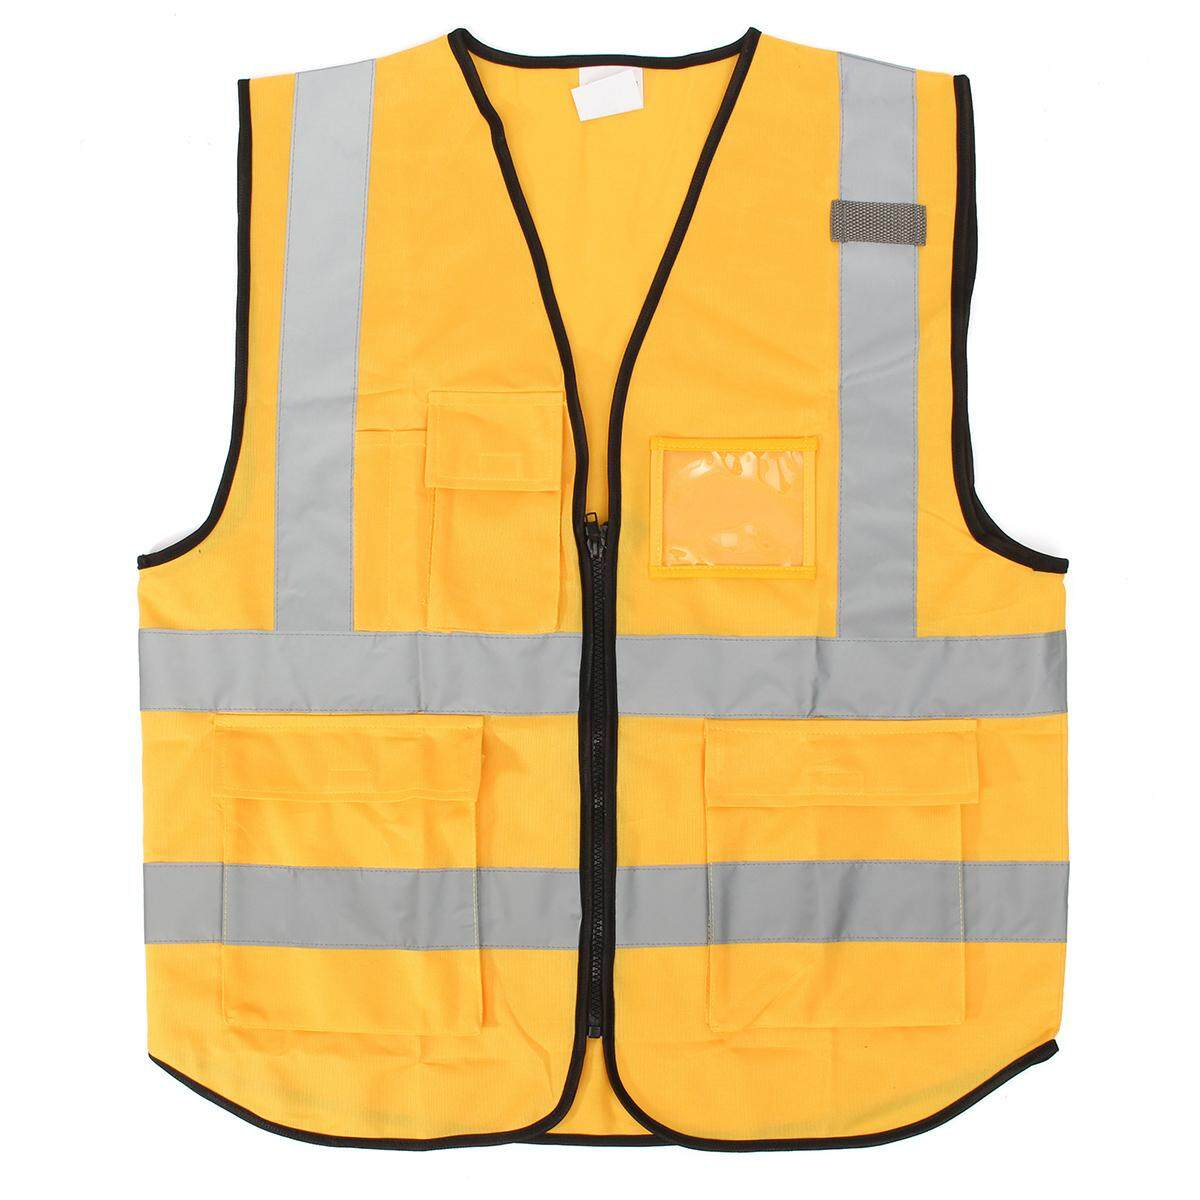 Yellow L Hi Vis Vest Workwear Clothing Safety Reflective Vest Safety Vest Reflective Logo Printing By Freebang.